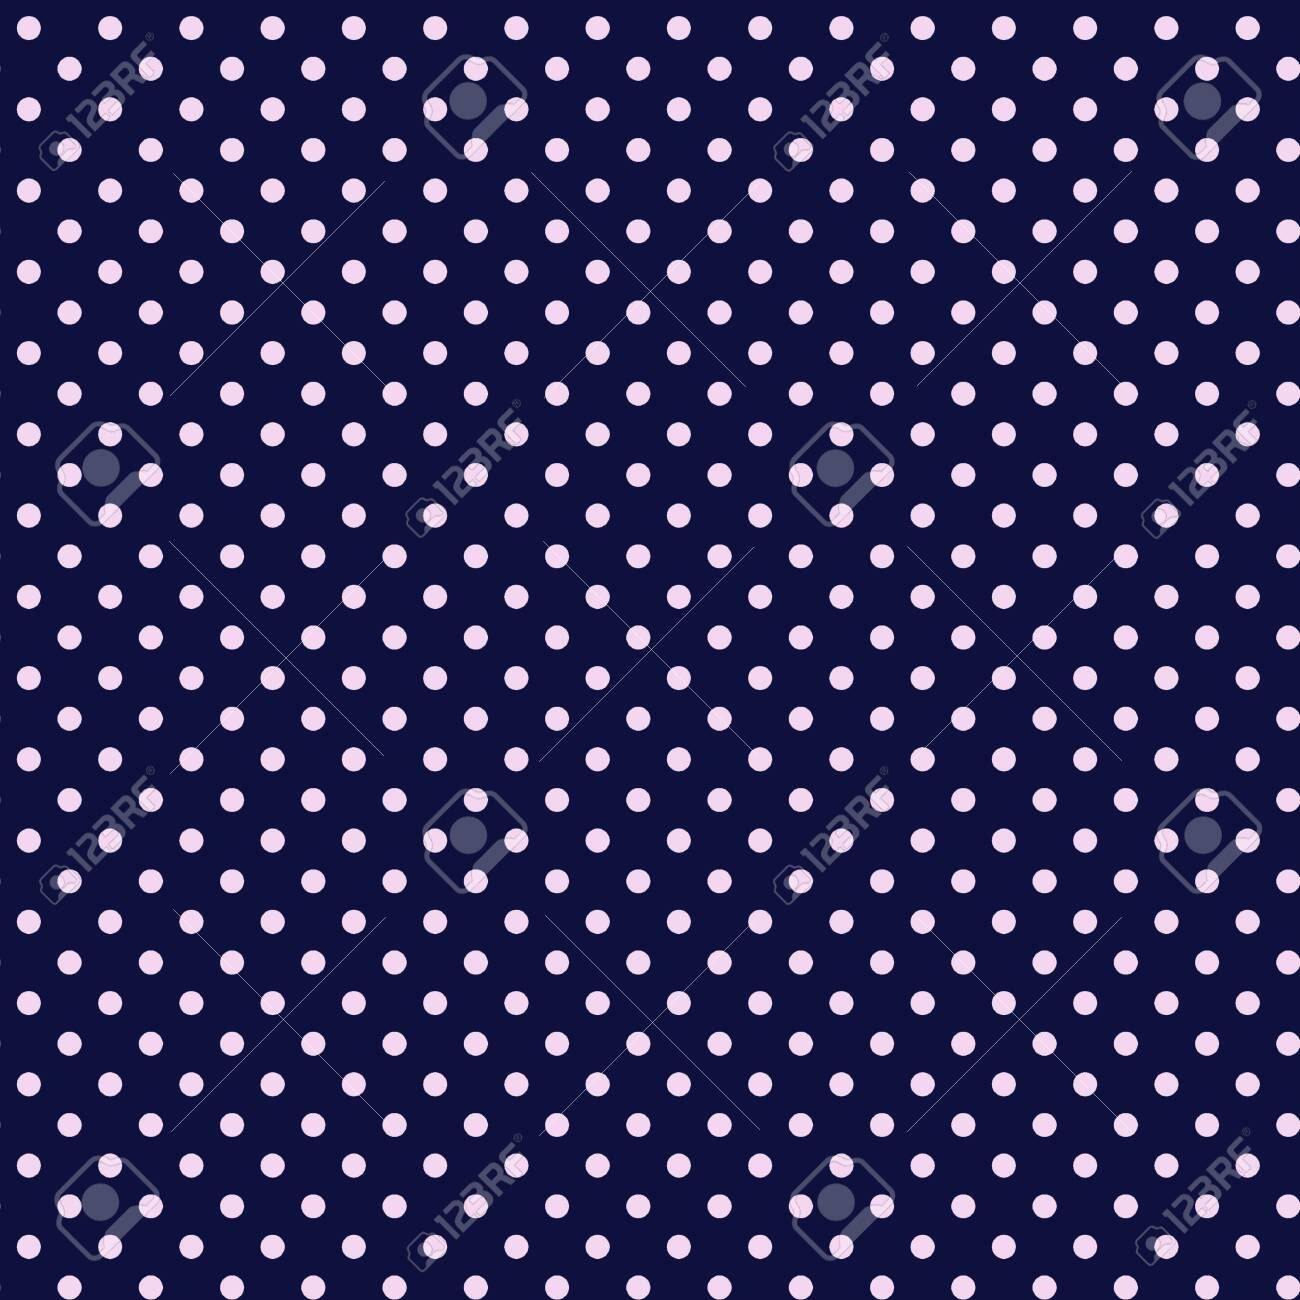 Polka Dot Pattern On Navy Blue Background These Small Dots Stock Photo Picture And Royalty Free Image Image 139687657